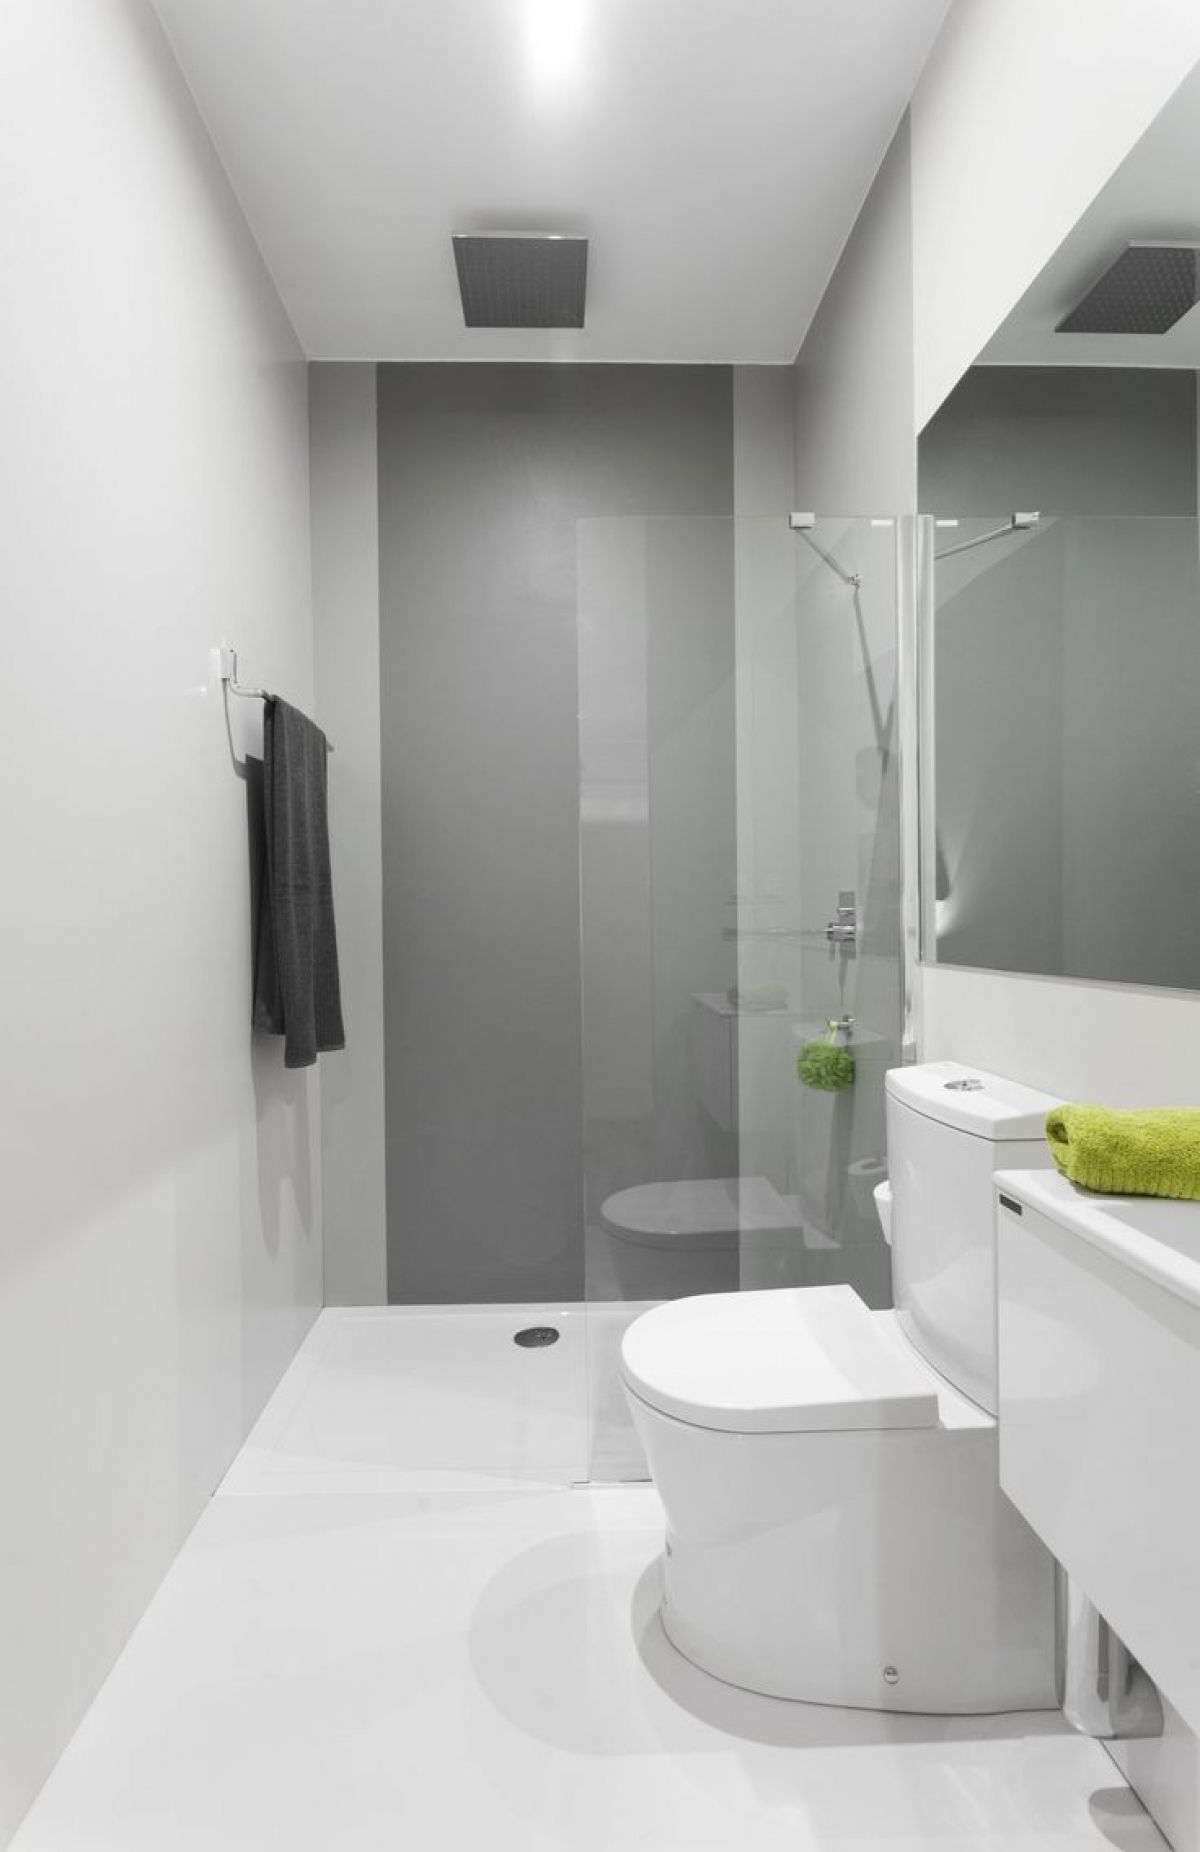 Small Bathrooms Big Ideas Small Narrow Bathroom Long Narrow Bathroom Narrow Bathroom Designs